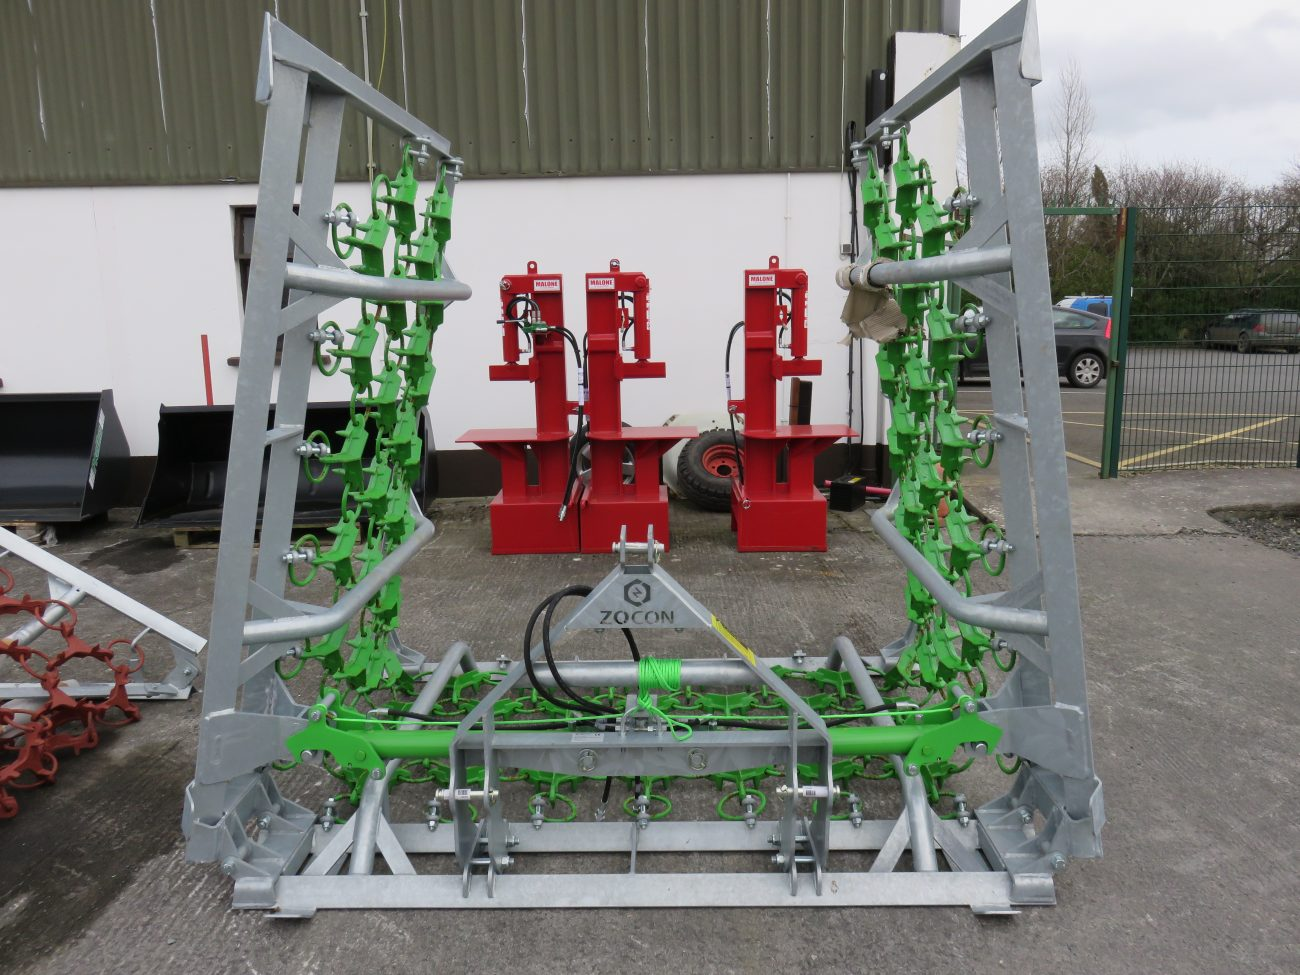 Zocon 4 Row Grassland Harrows